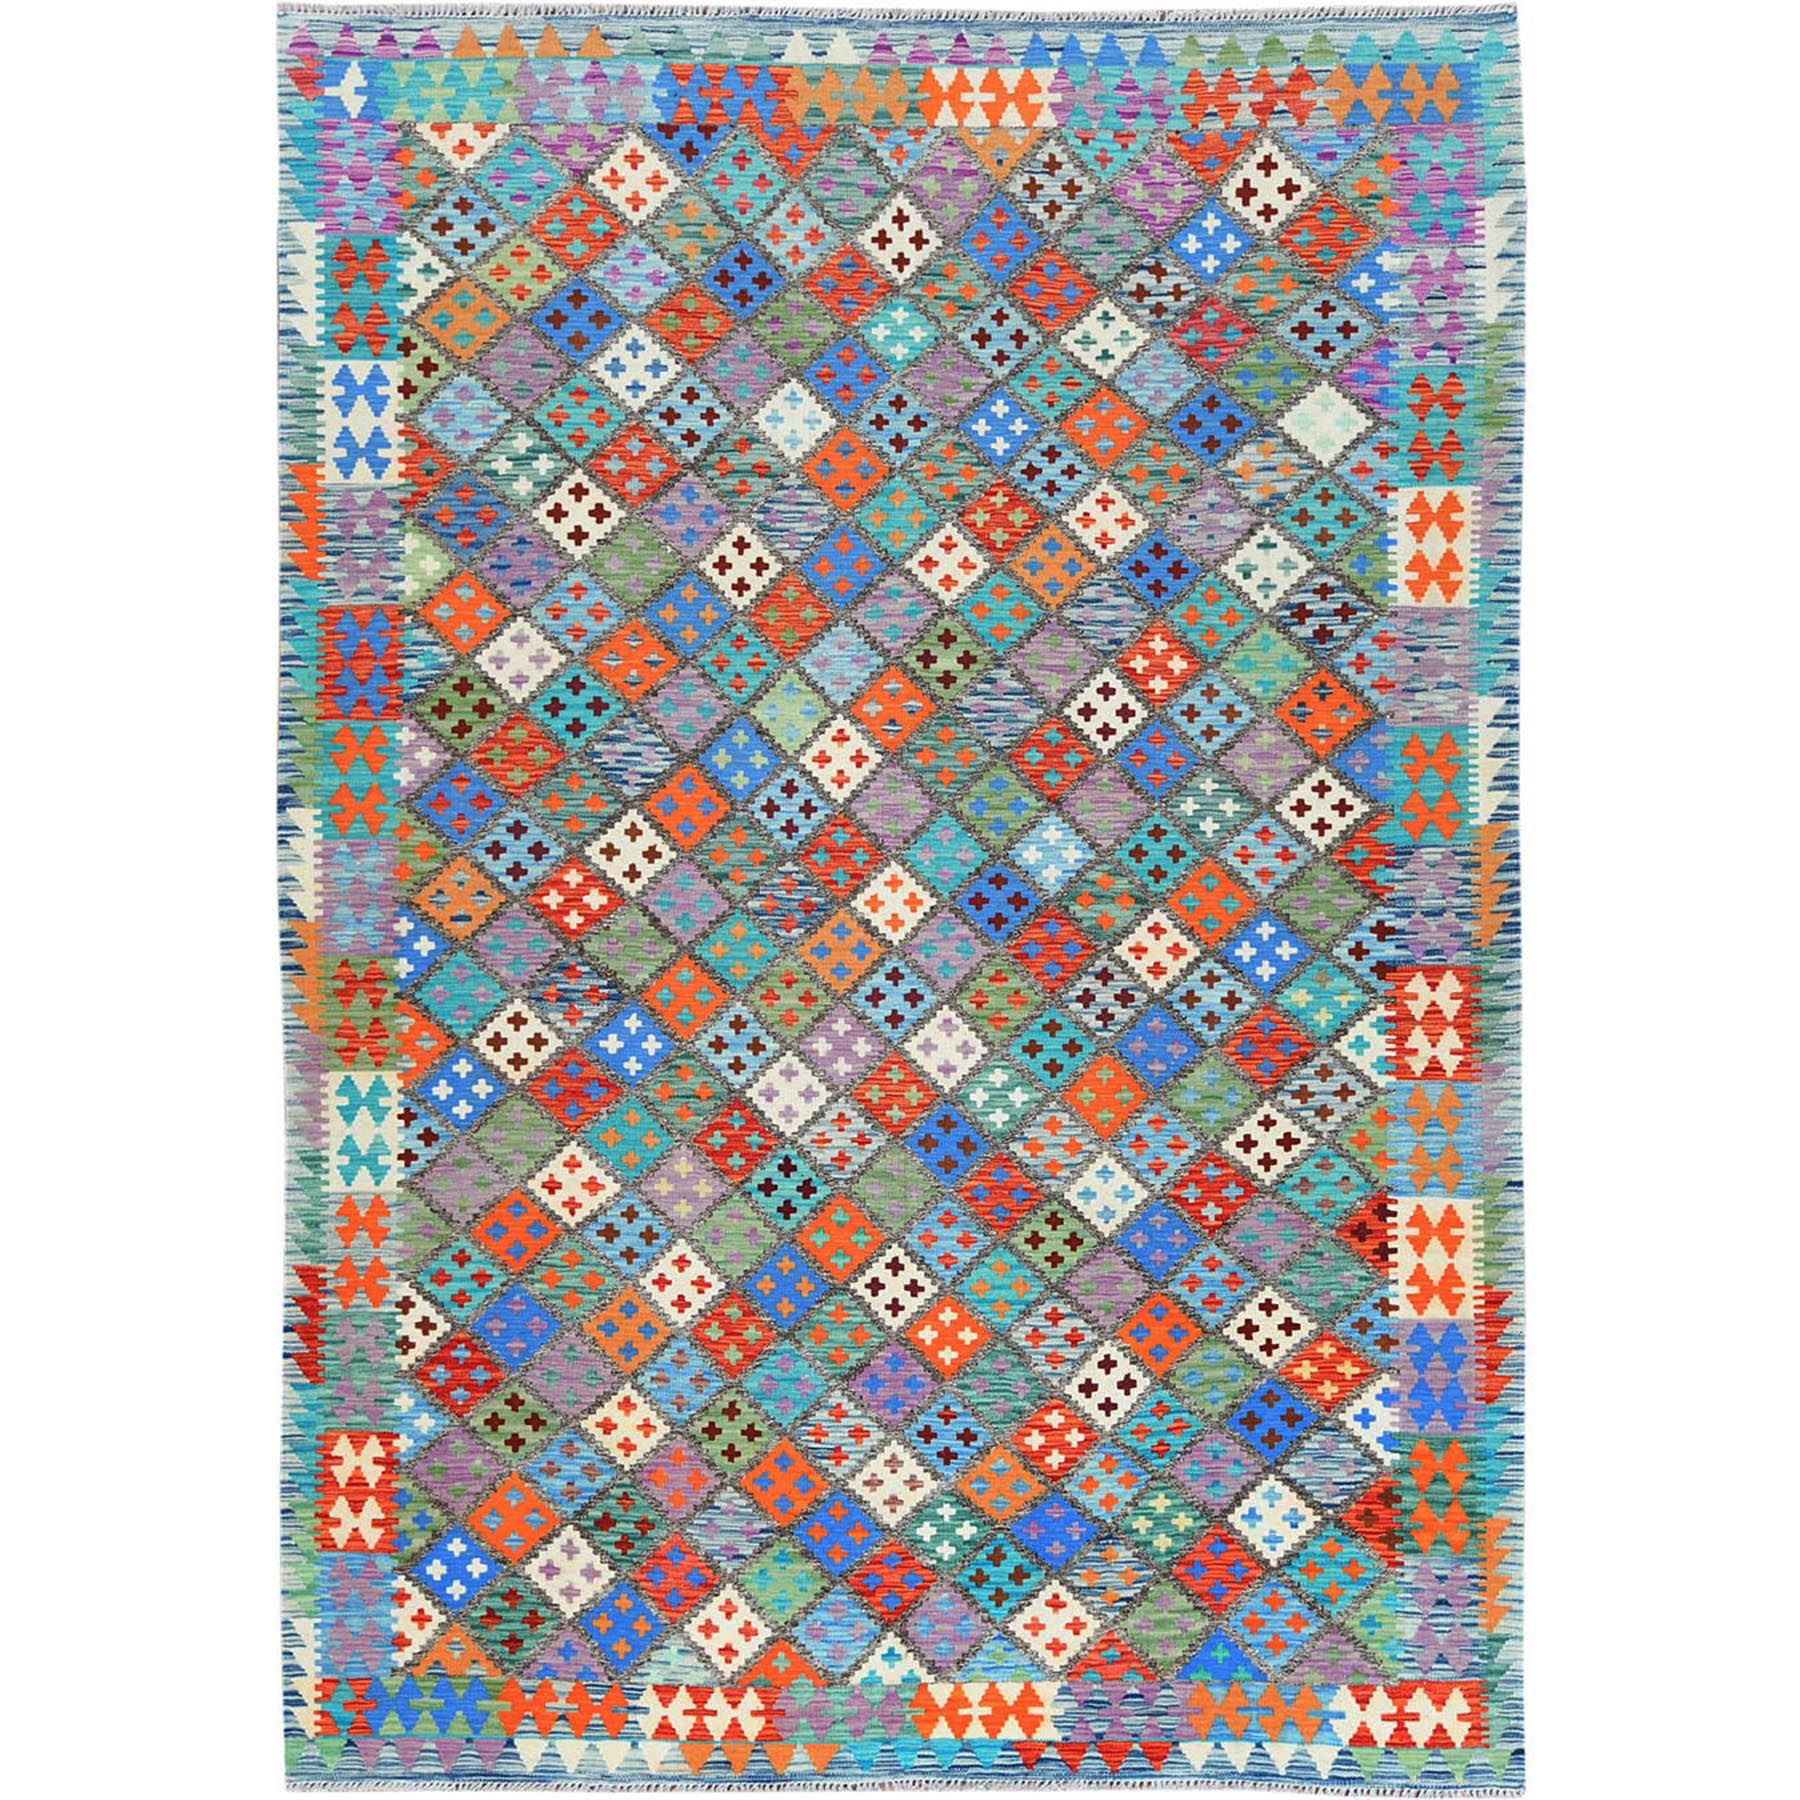 "6'7""x9'7"" Blue Geometric Design Afghan Kilim With Vibrant Color Shades Velvety Wool Hand Woven Oriental Rug"